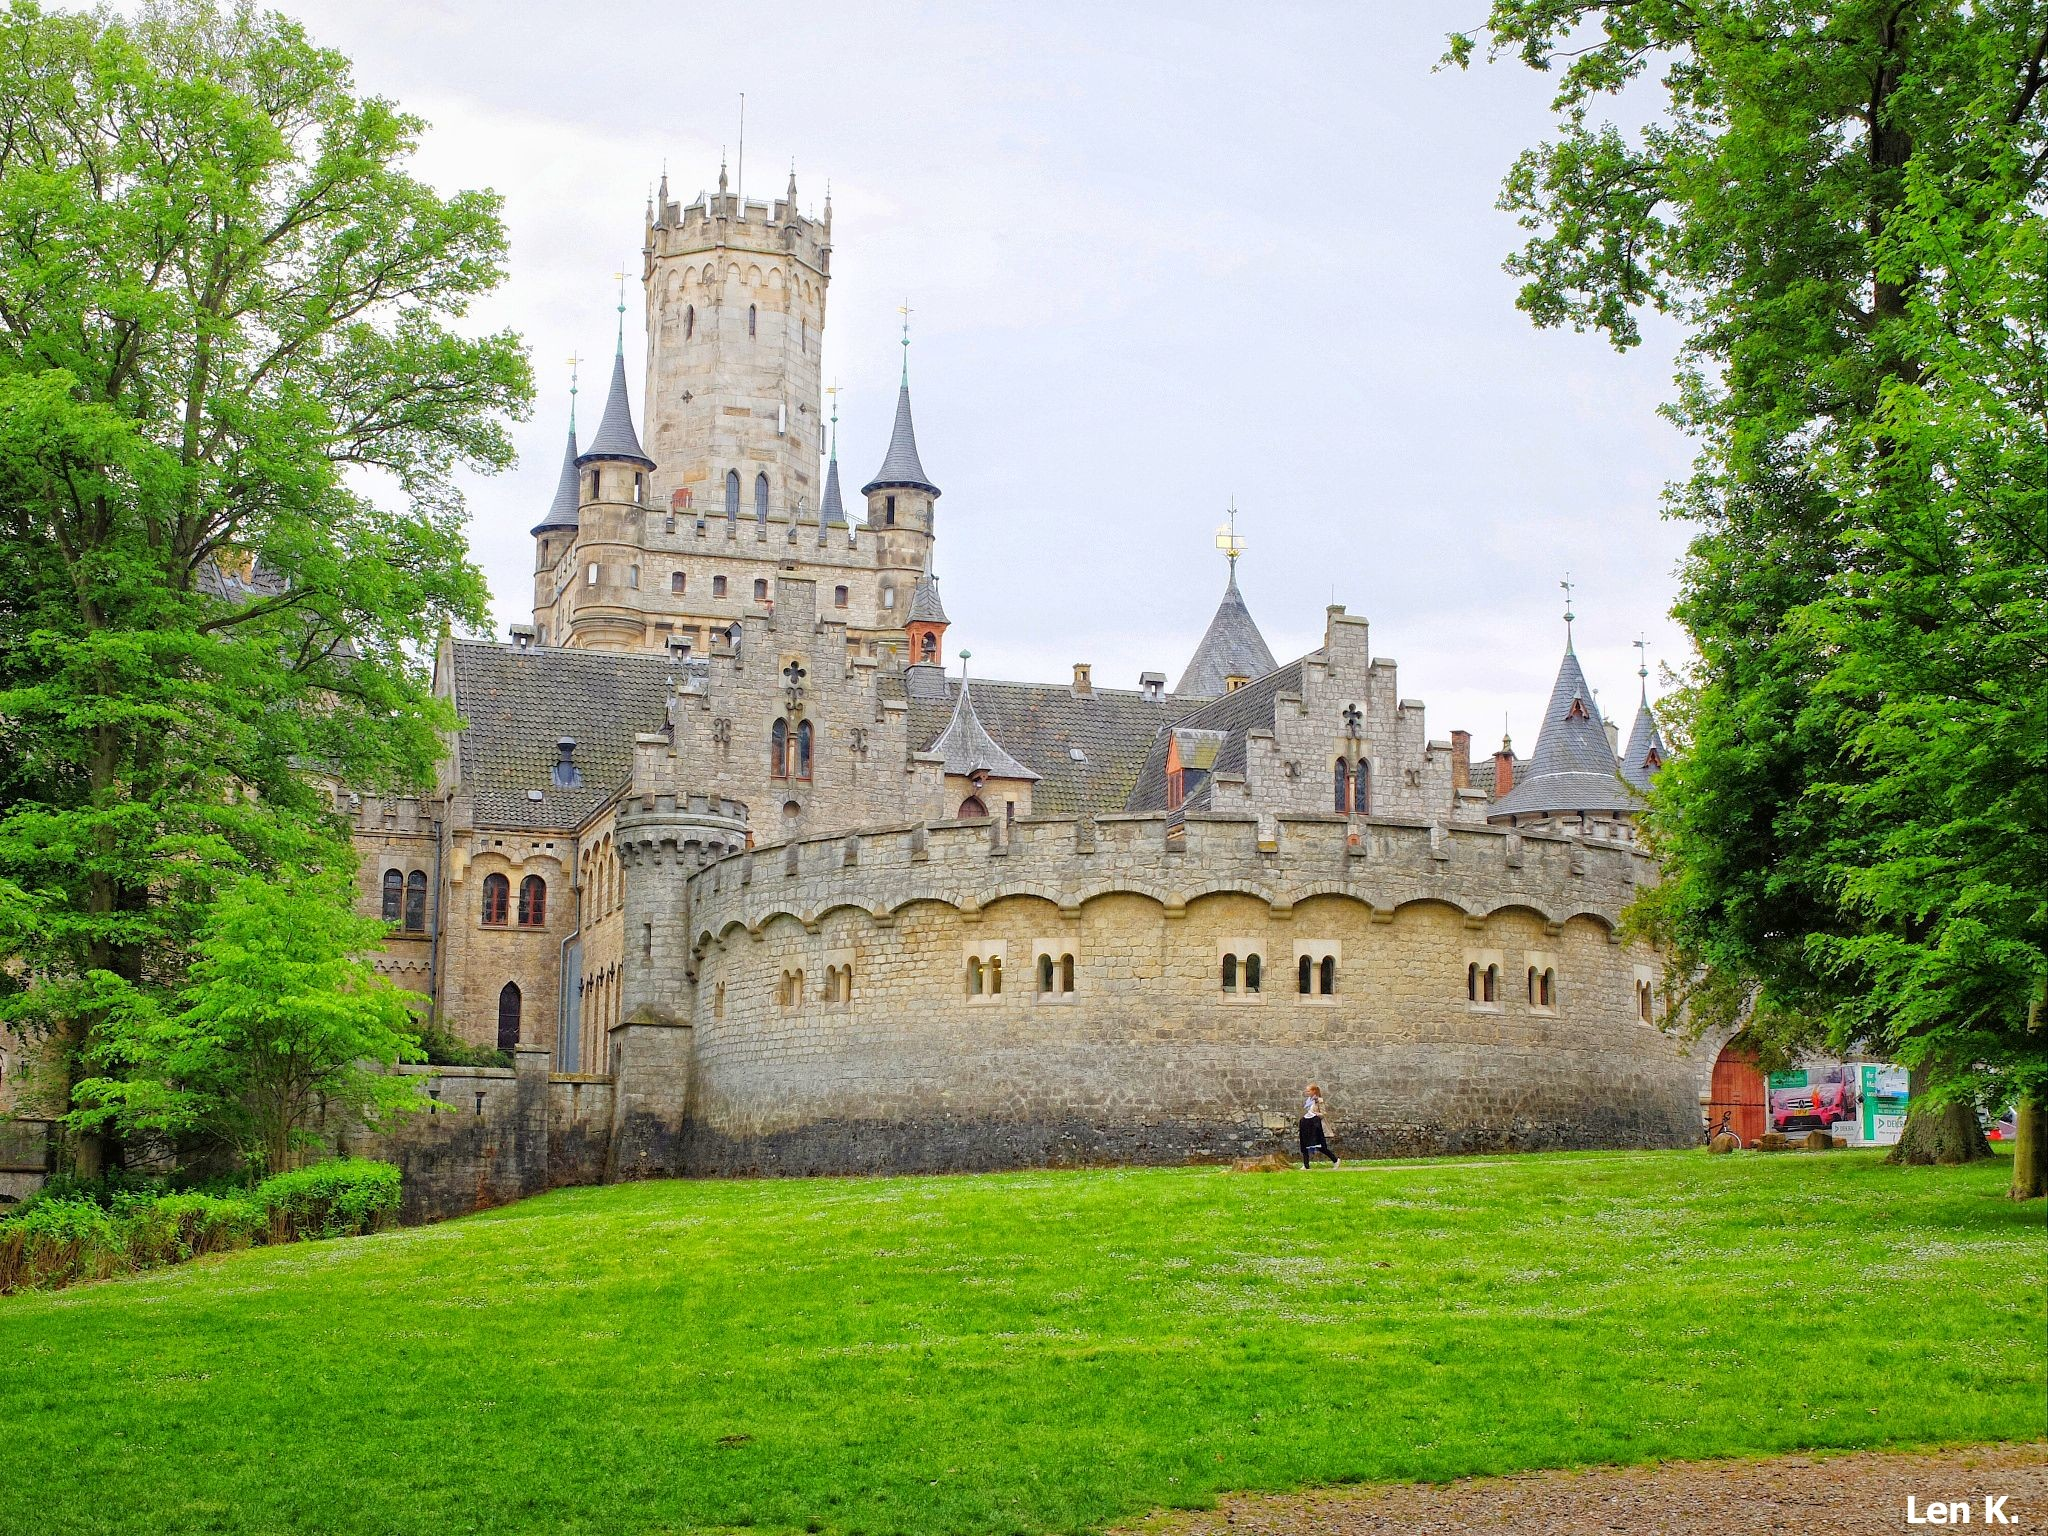 The outer wall of Marienburg